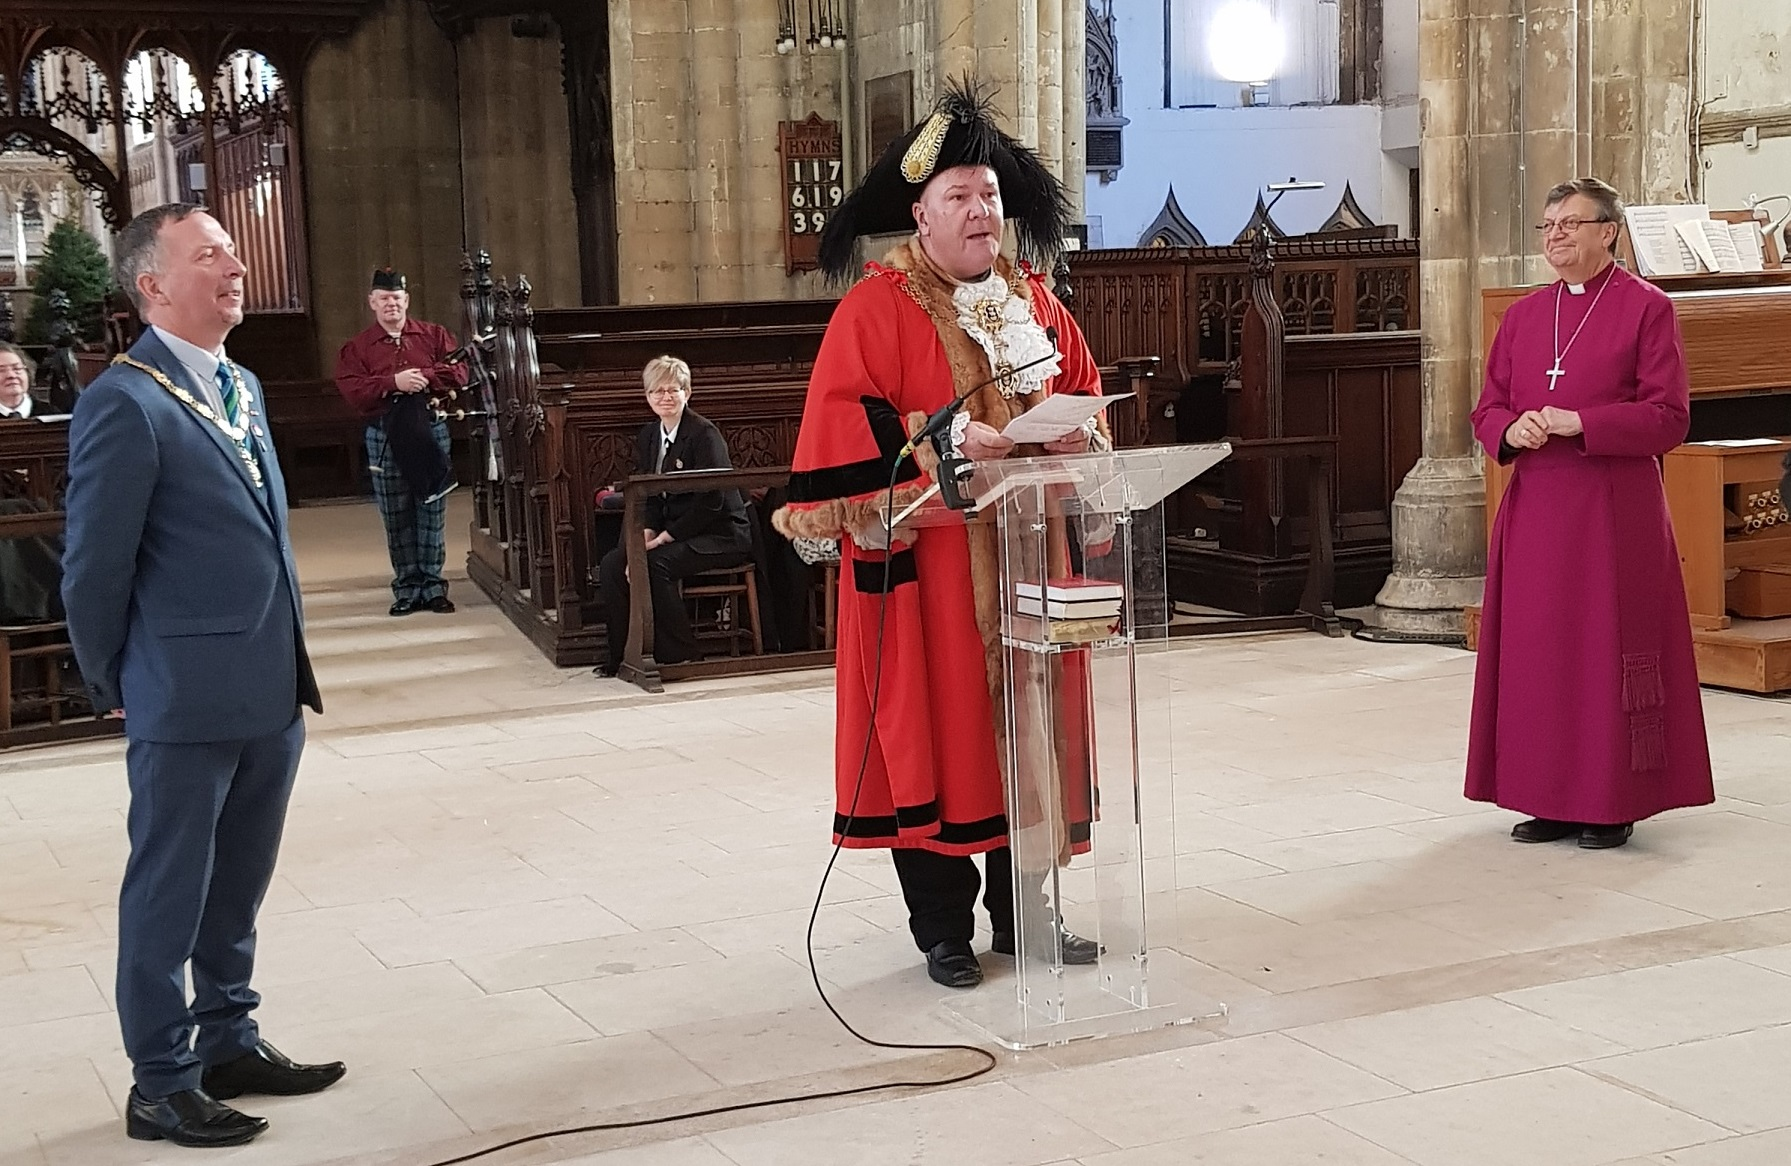 Lord Mayor Councillor Steve Wilson opens the Christmas Tree Festival at Hull Minster.